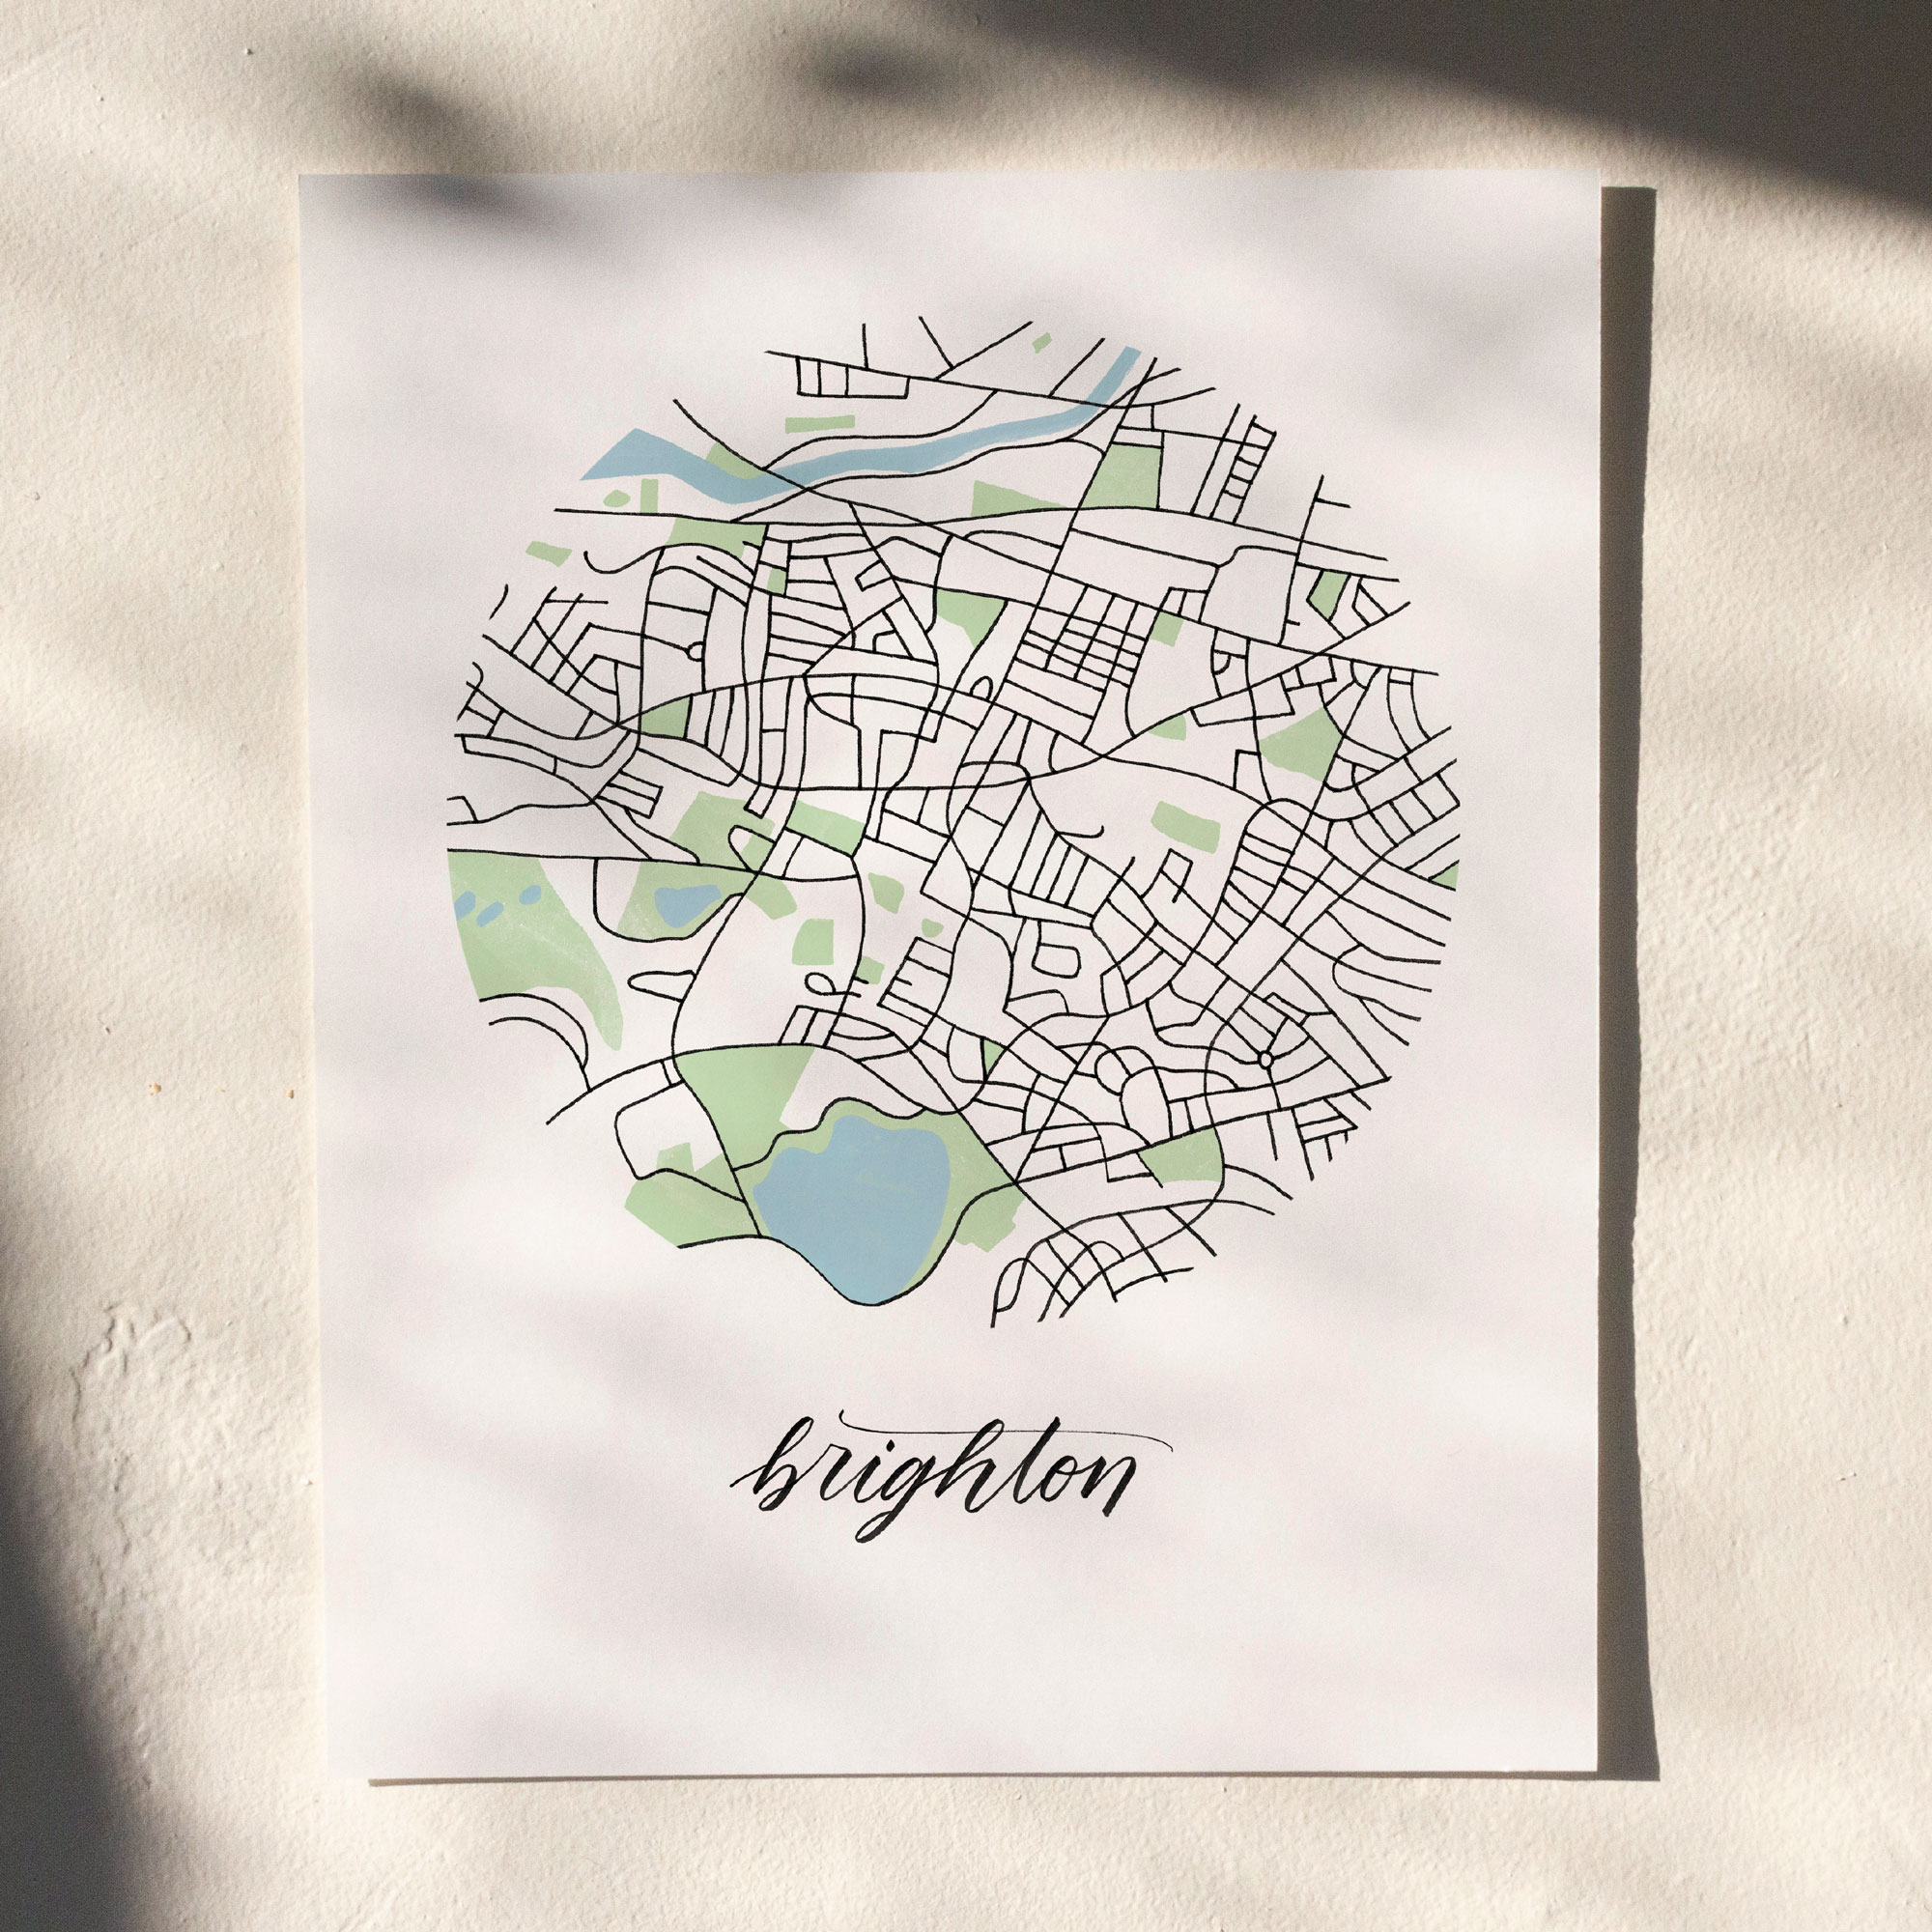 Brighton, Boston Map Print hanging on white wall with leaf shadows across the image